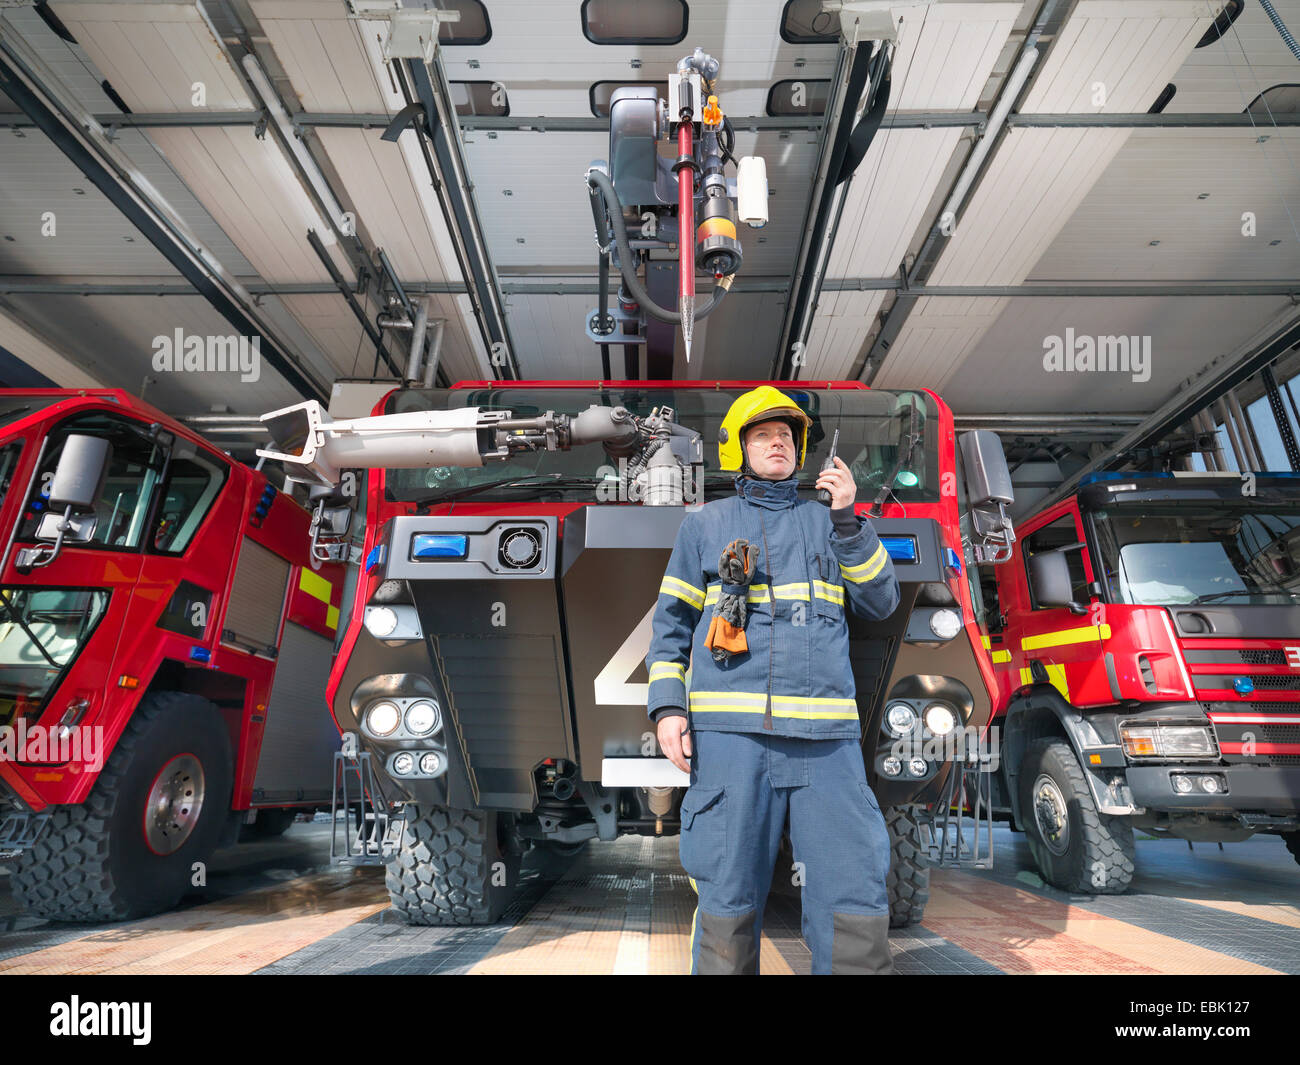 Fireman using walkie talkie in front of fire engines in airport fire station - Stock Image